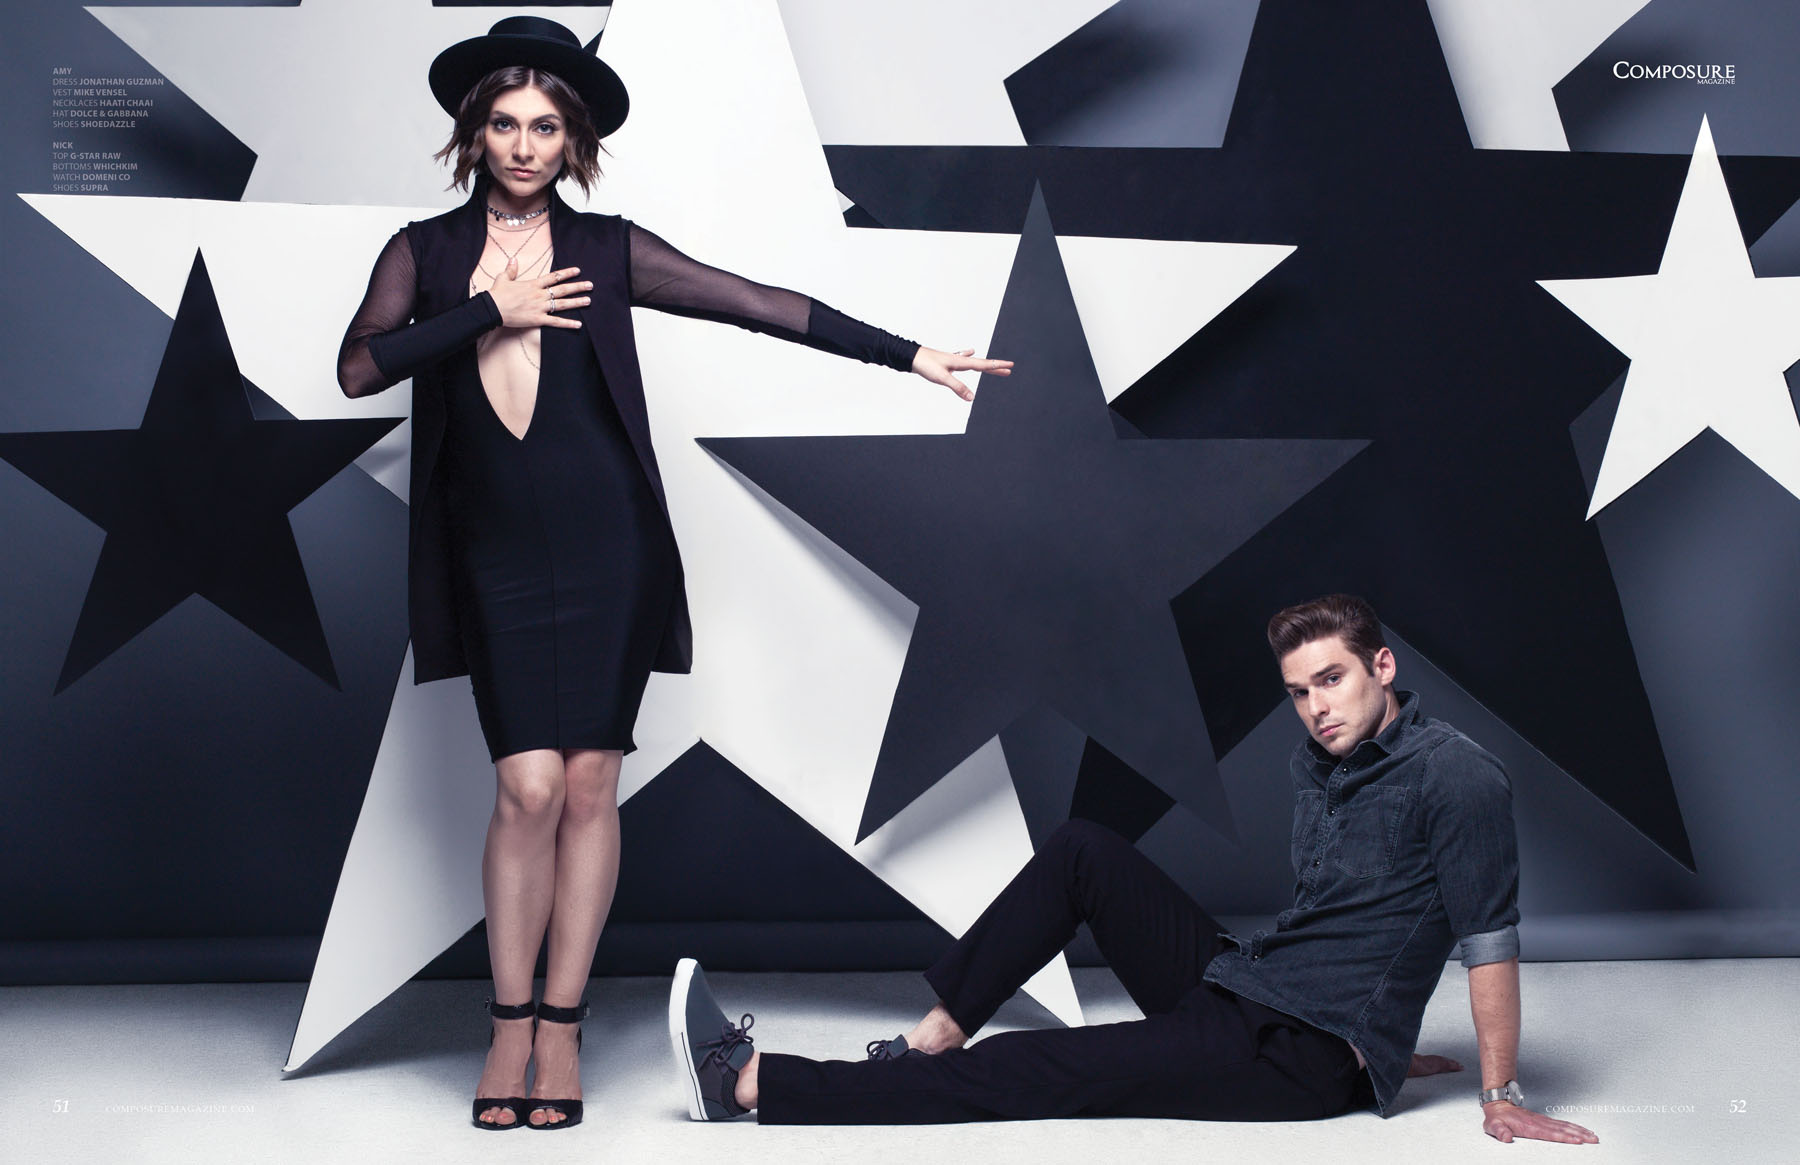 Karmin - Composure Magazine Aug '15